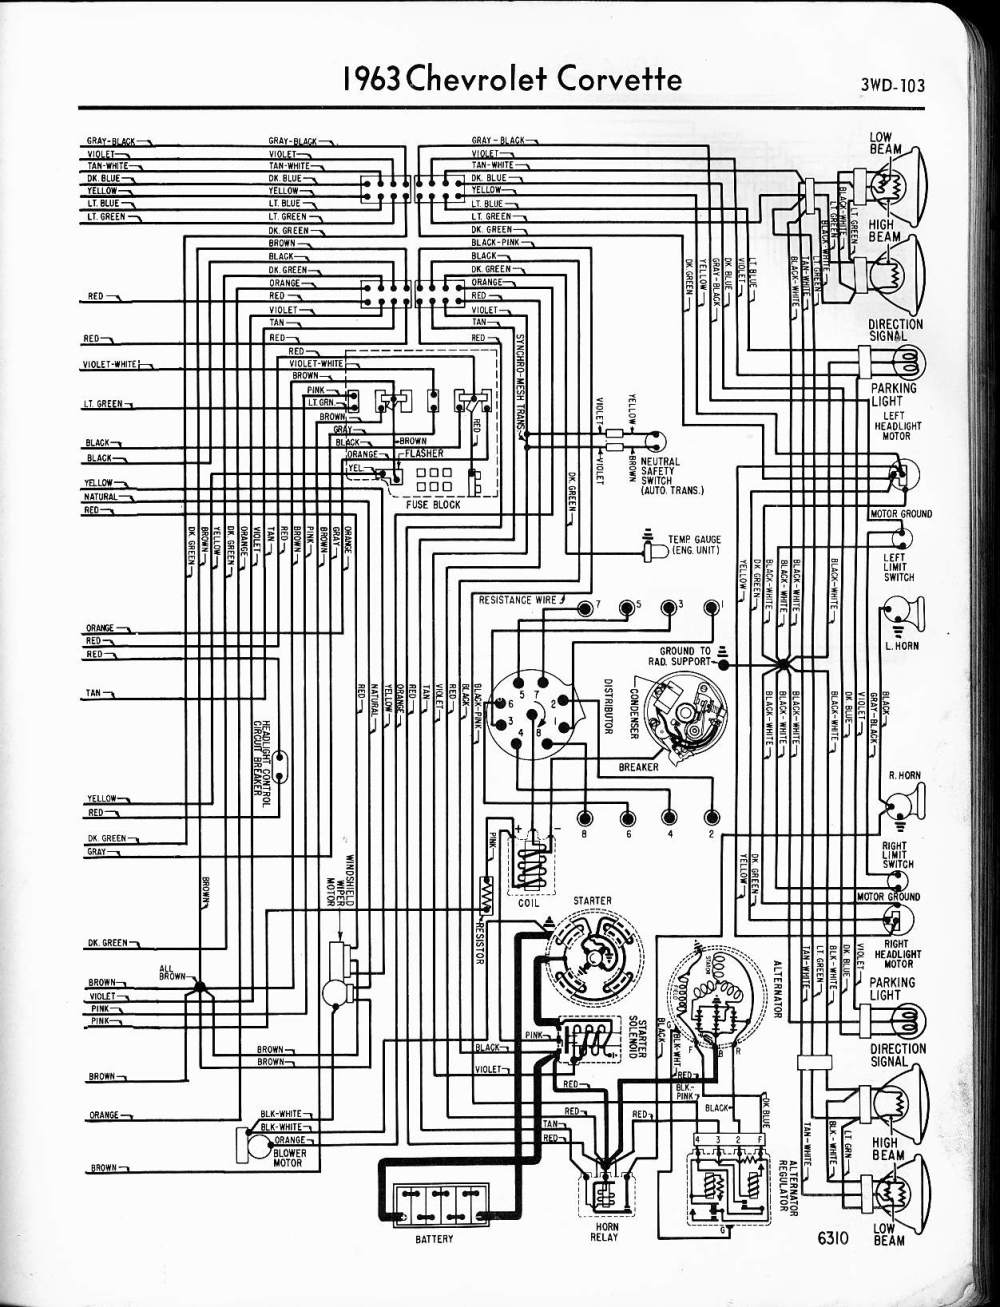 medium resolution of 1963 gmc wiring diagram wiring diagram will be a thing u2022 rh exploreandmore co uk 1973